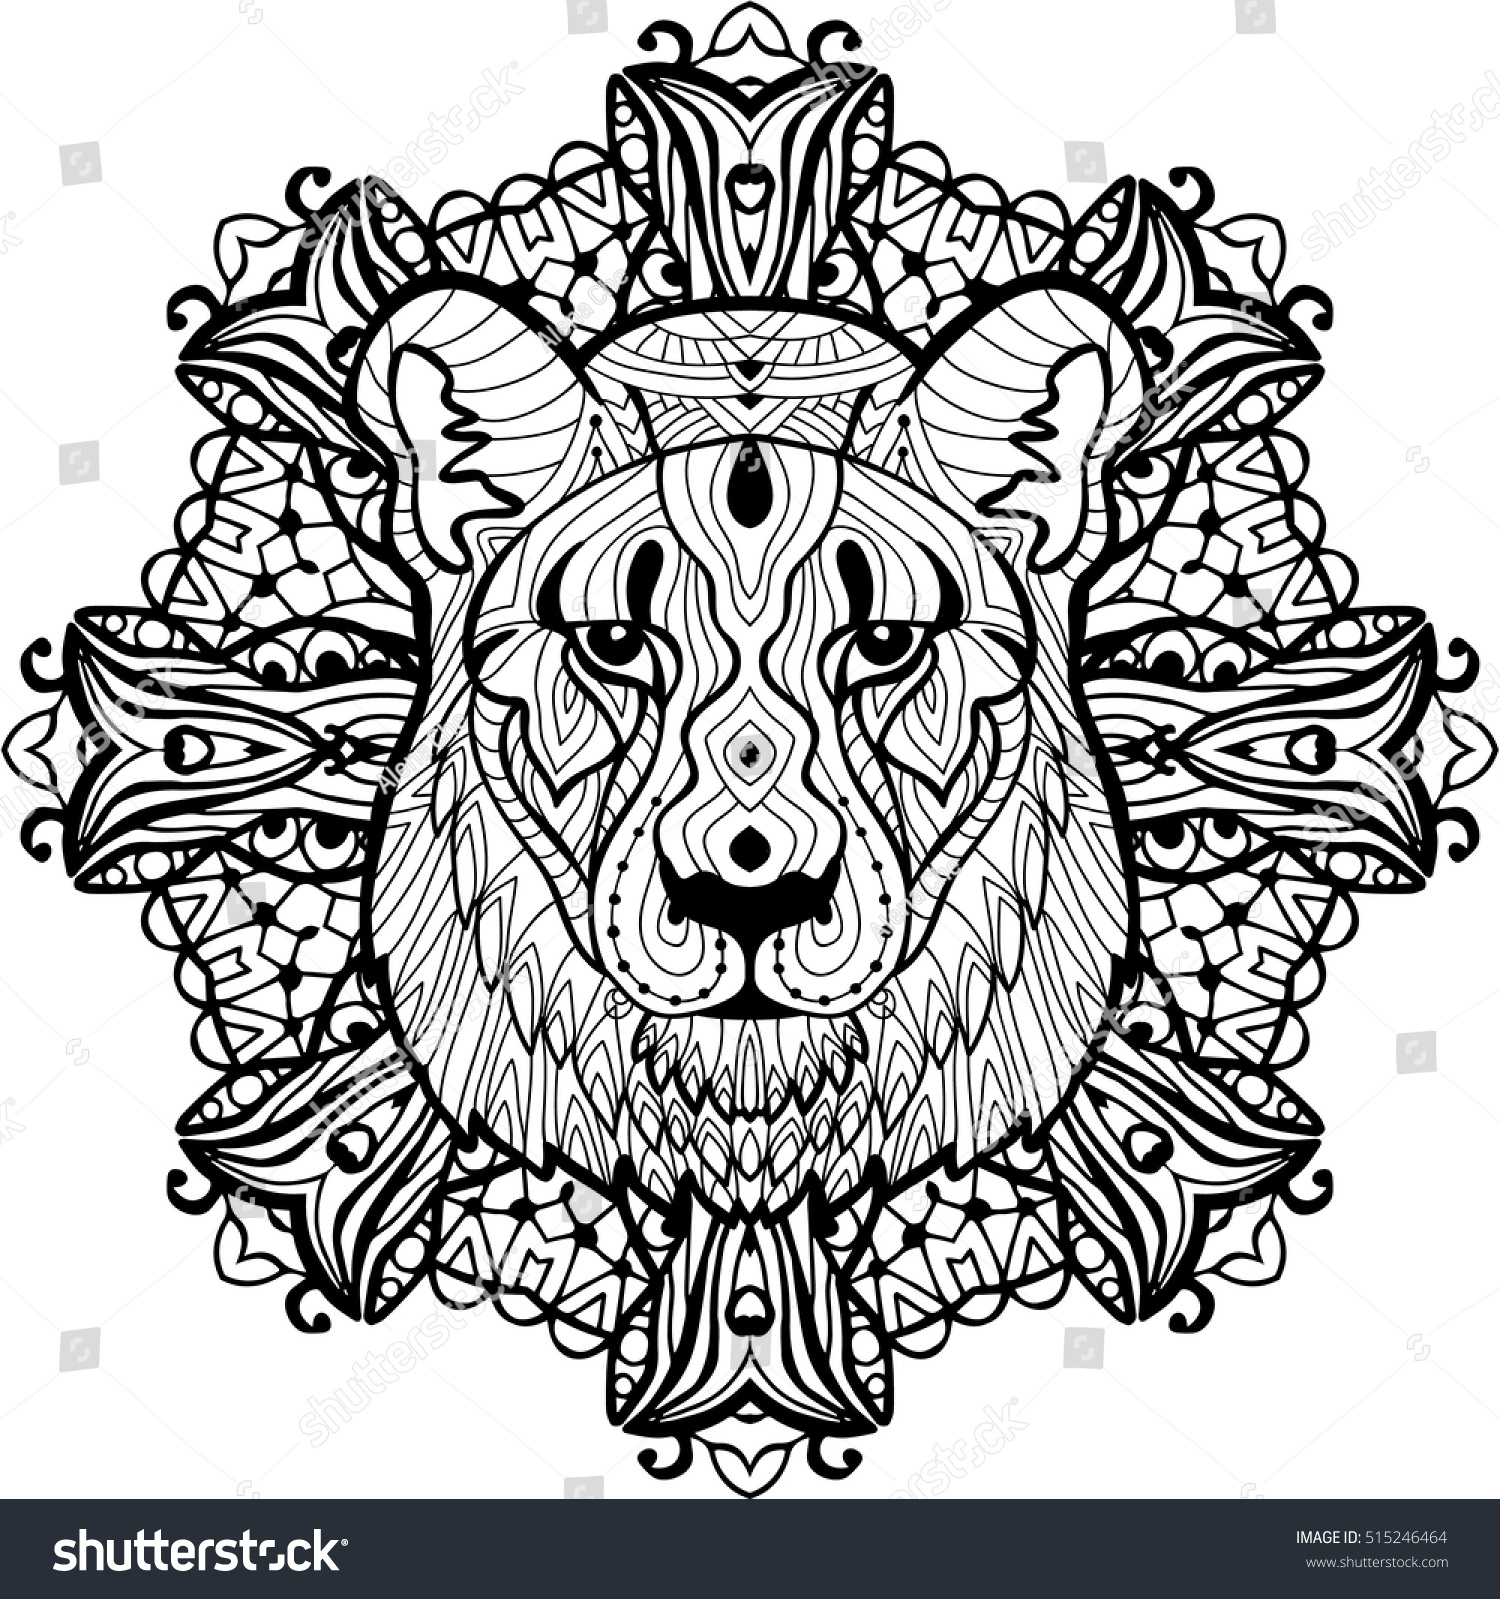 Royalty free totem coloring page for adults painted for Tribal pattern coloring pages